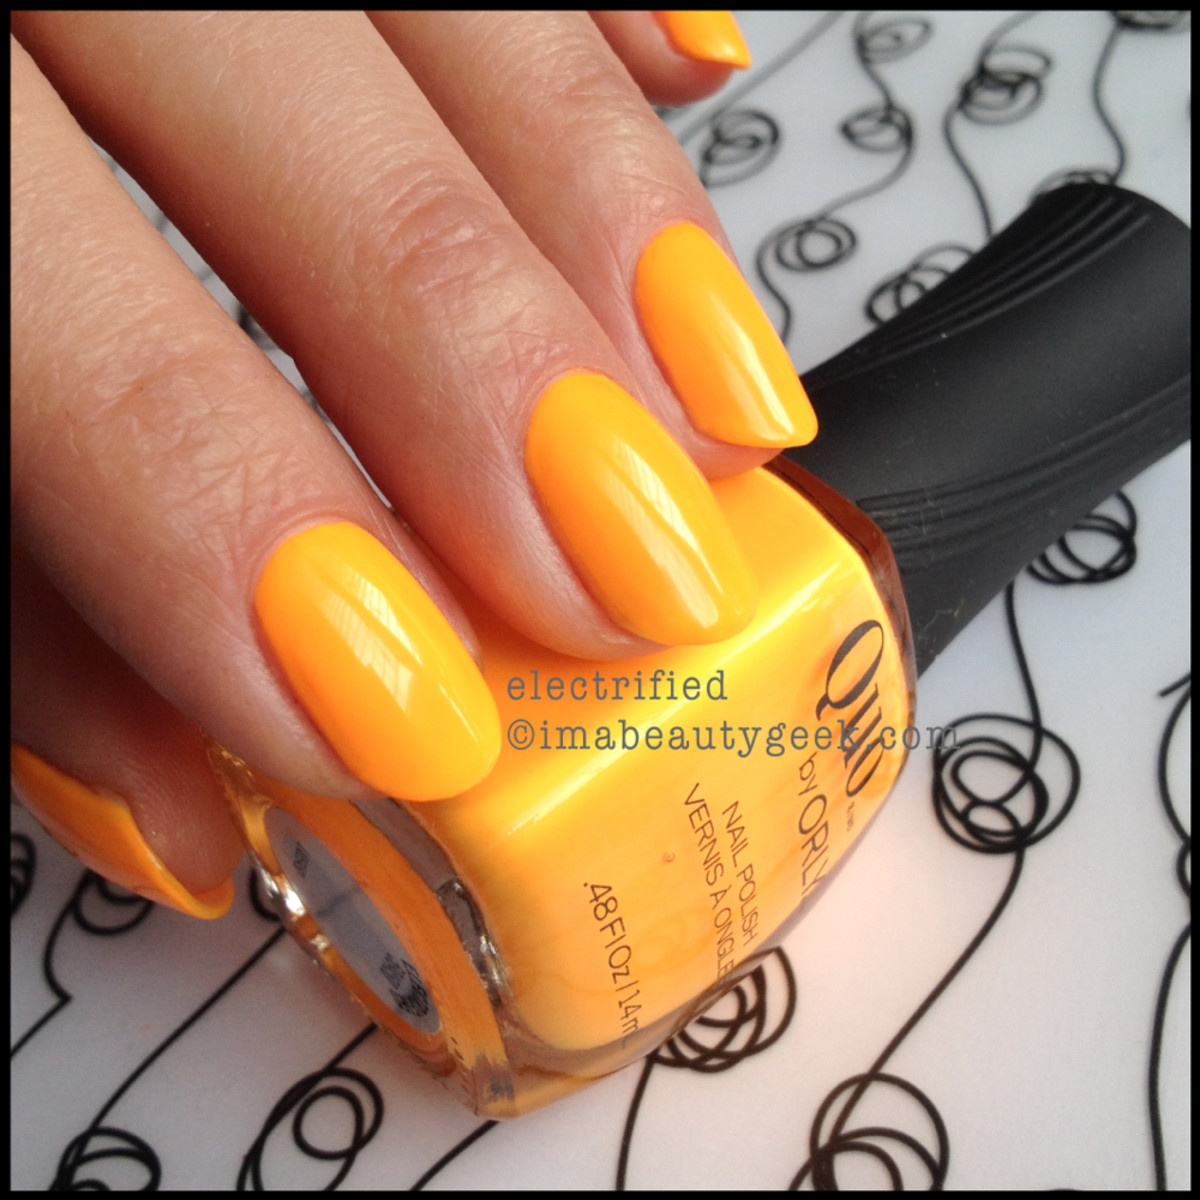 Quo by Orly Electrified Summer 2014